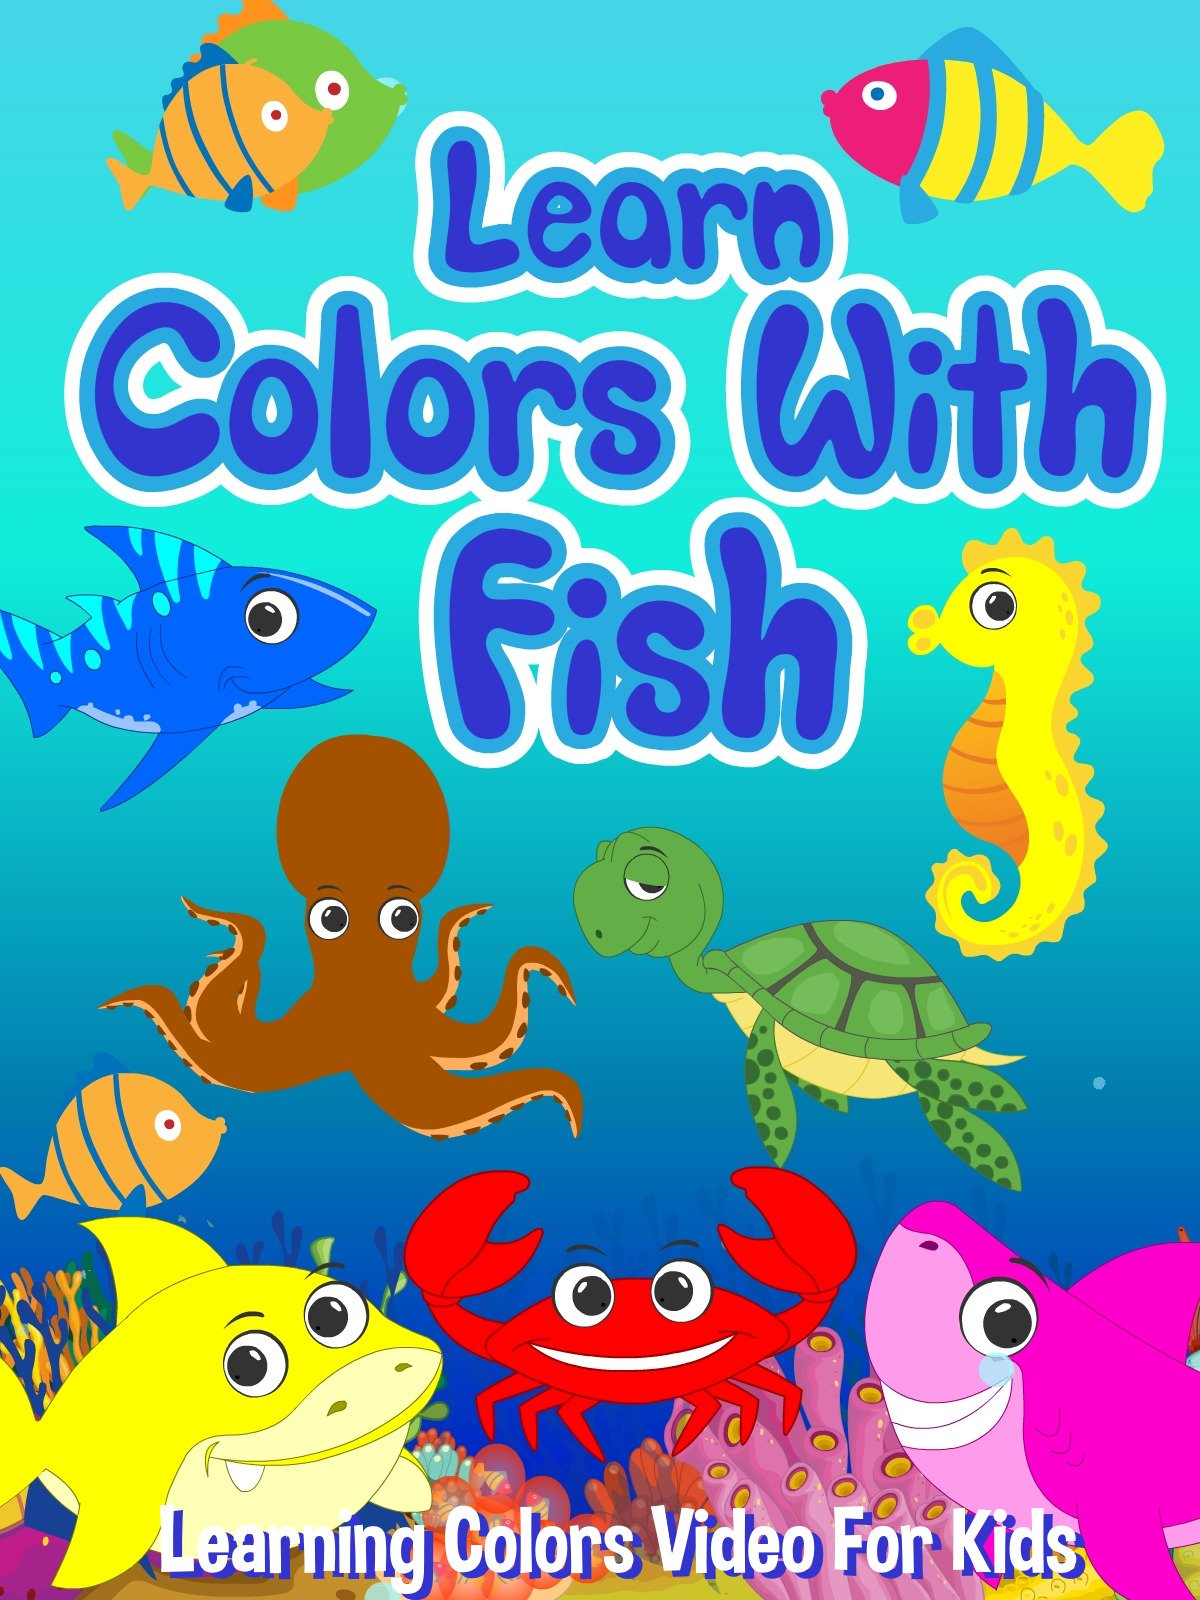 Learn Colors With Fish